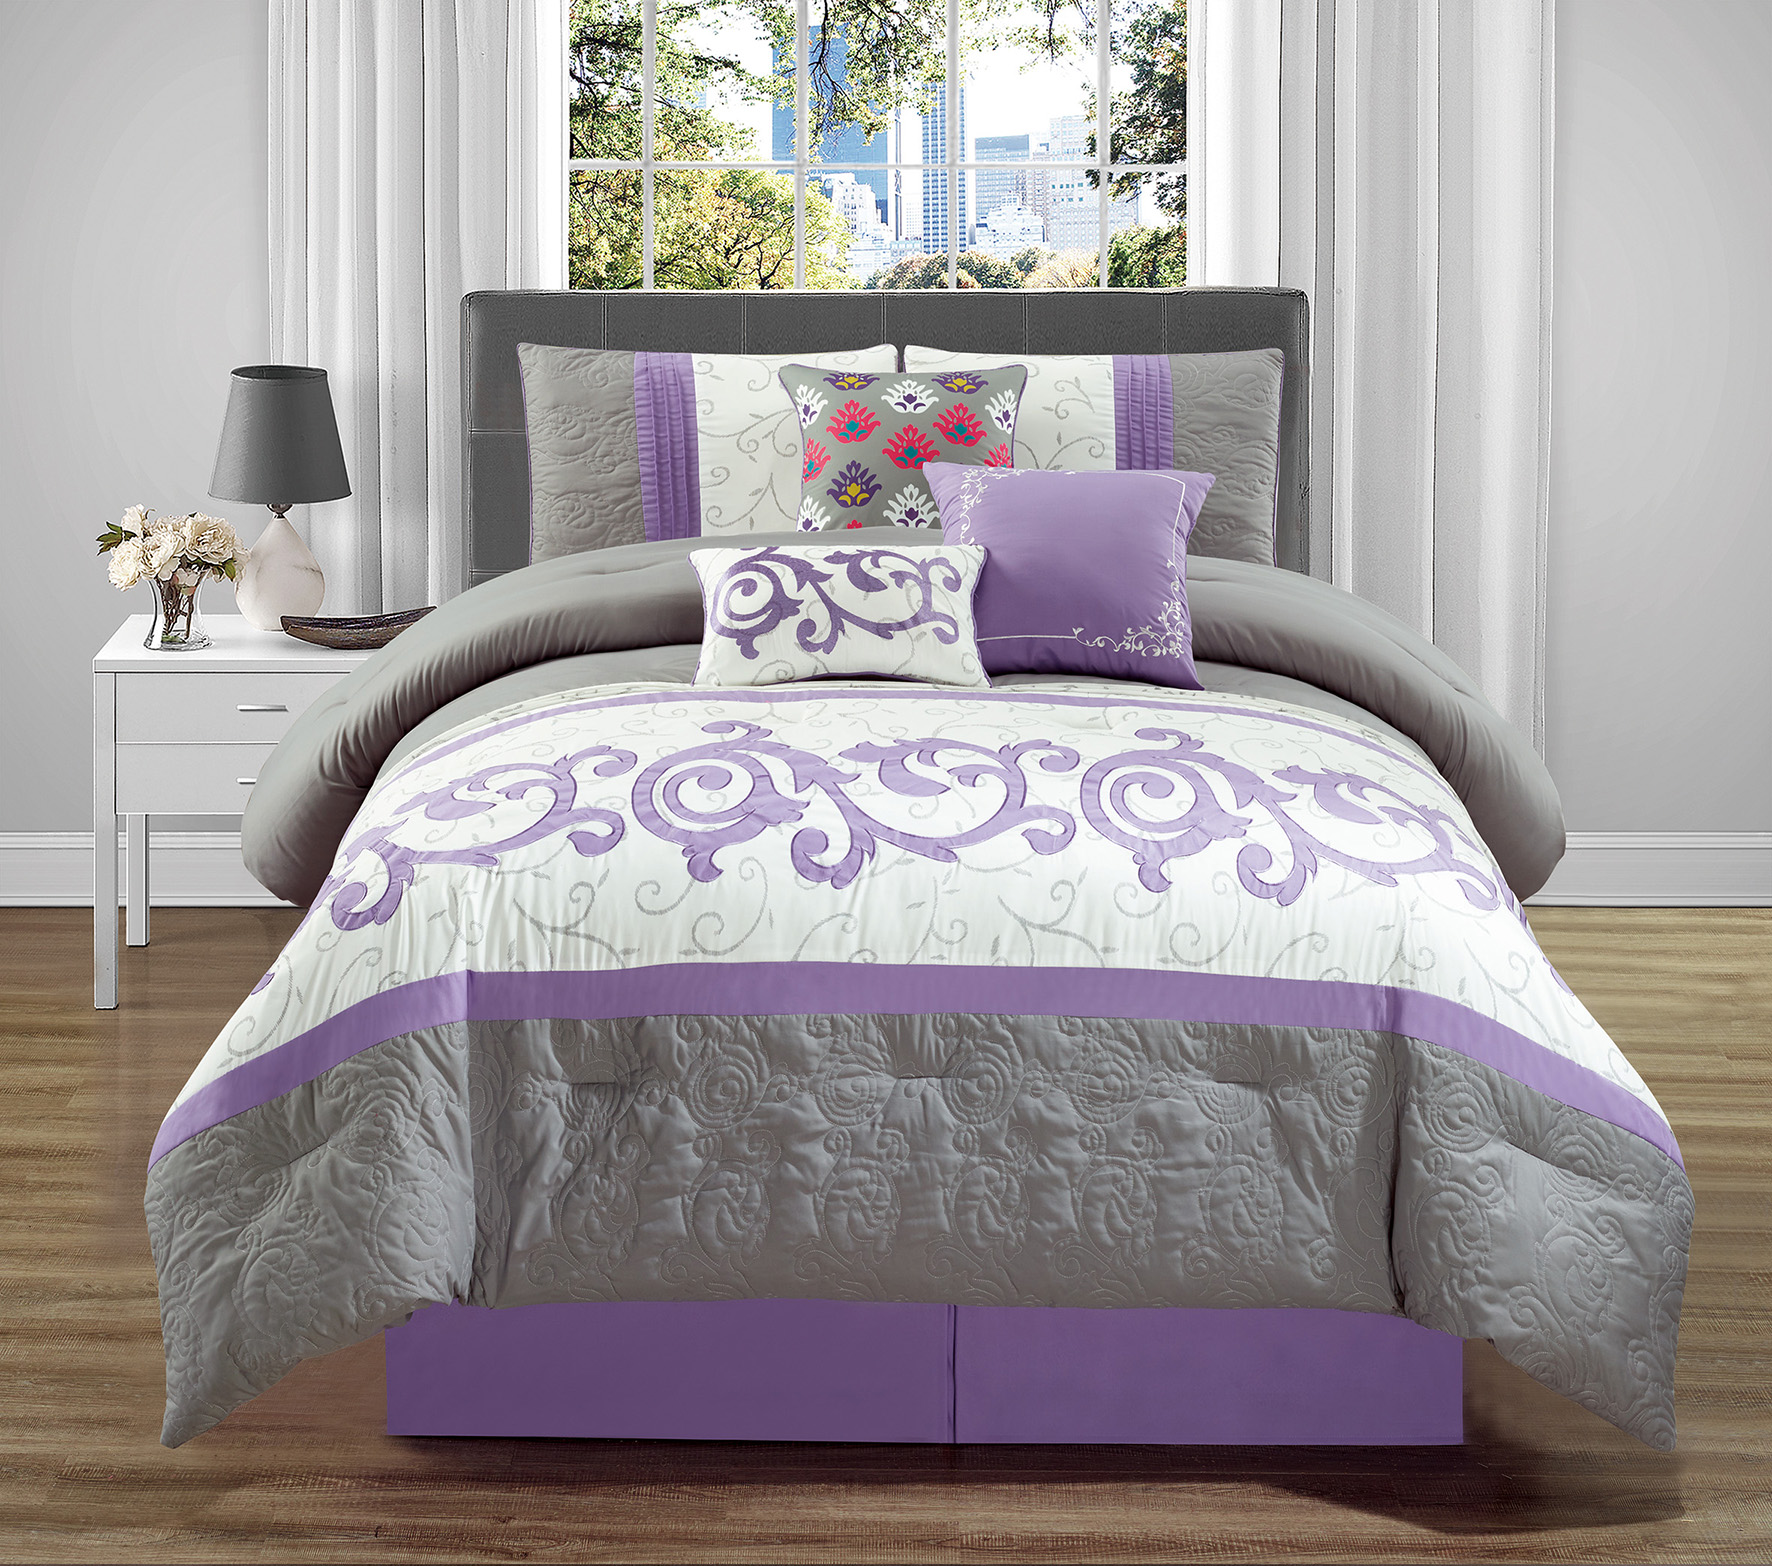 Wpm 7 Pieces Complete Bedding Ensemble Beige Lavender Purple Grey Luxury Embroidery Comforter Set Bed In A Bag Queen Or King Size Bedding Montreal Queen Walmart Com Walmart Com